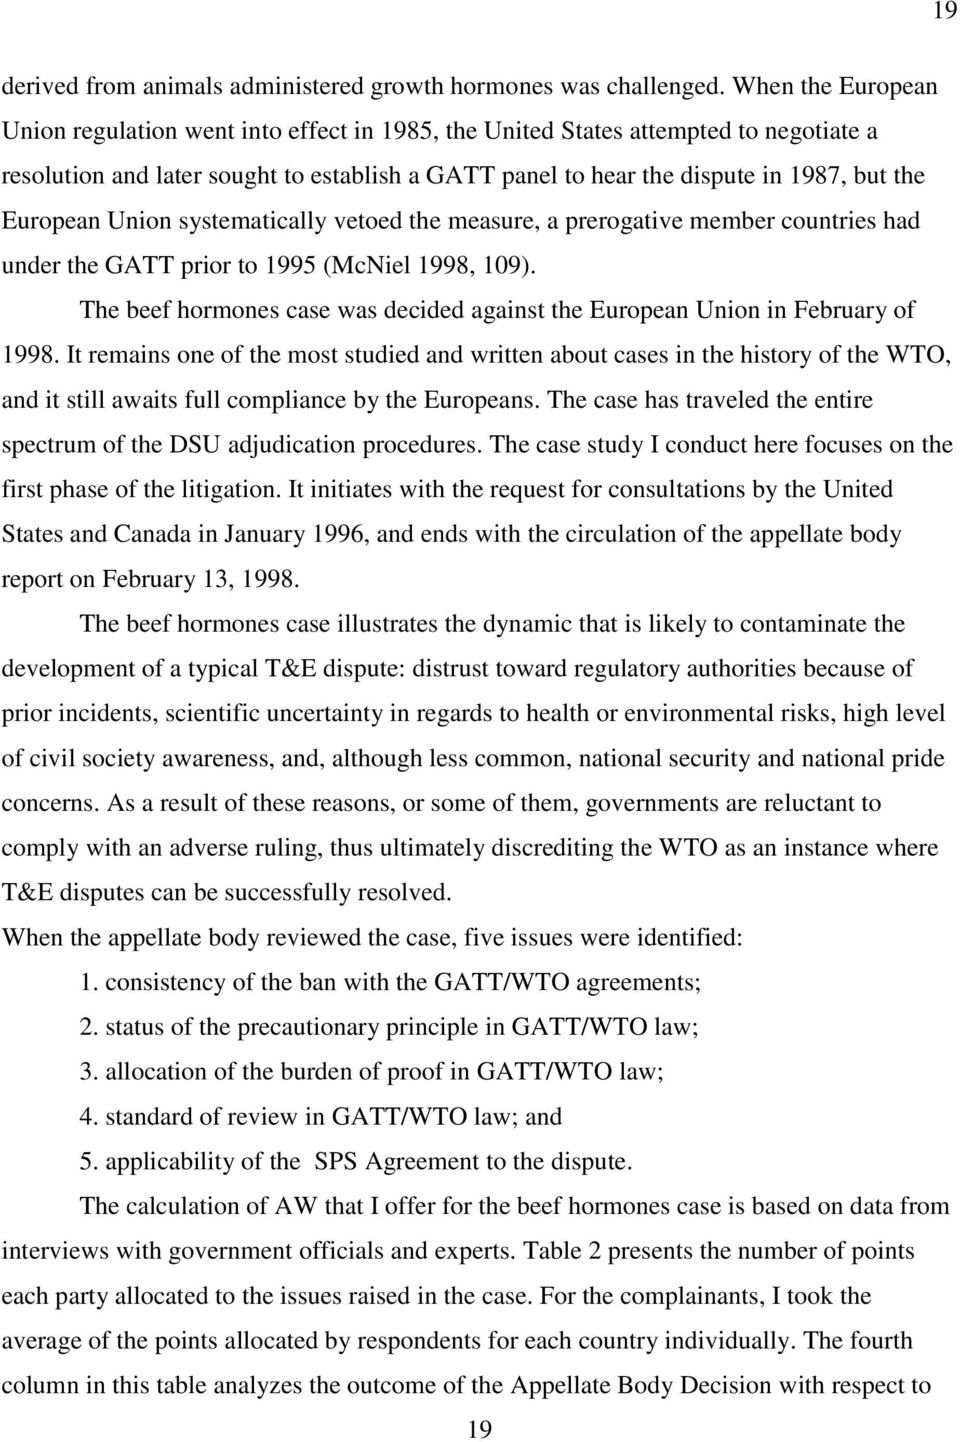 European Union systematically vetoed the measure, a prerogative member countries had under the GATT prior to 1995 (McNiel 1998, 109).